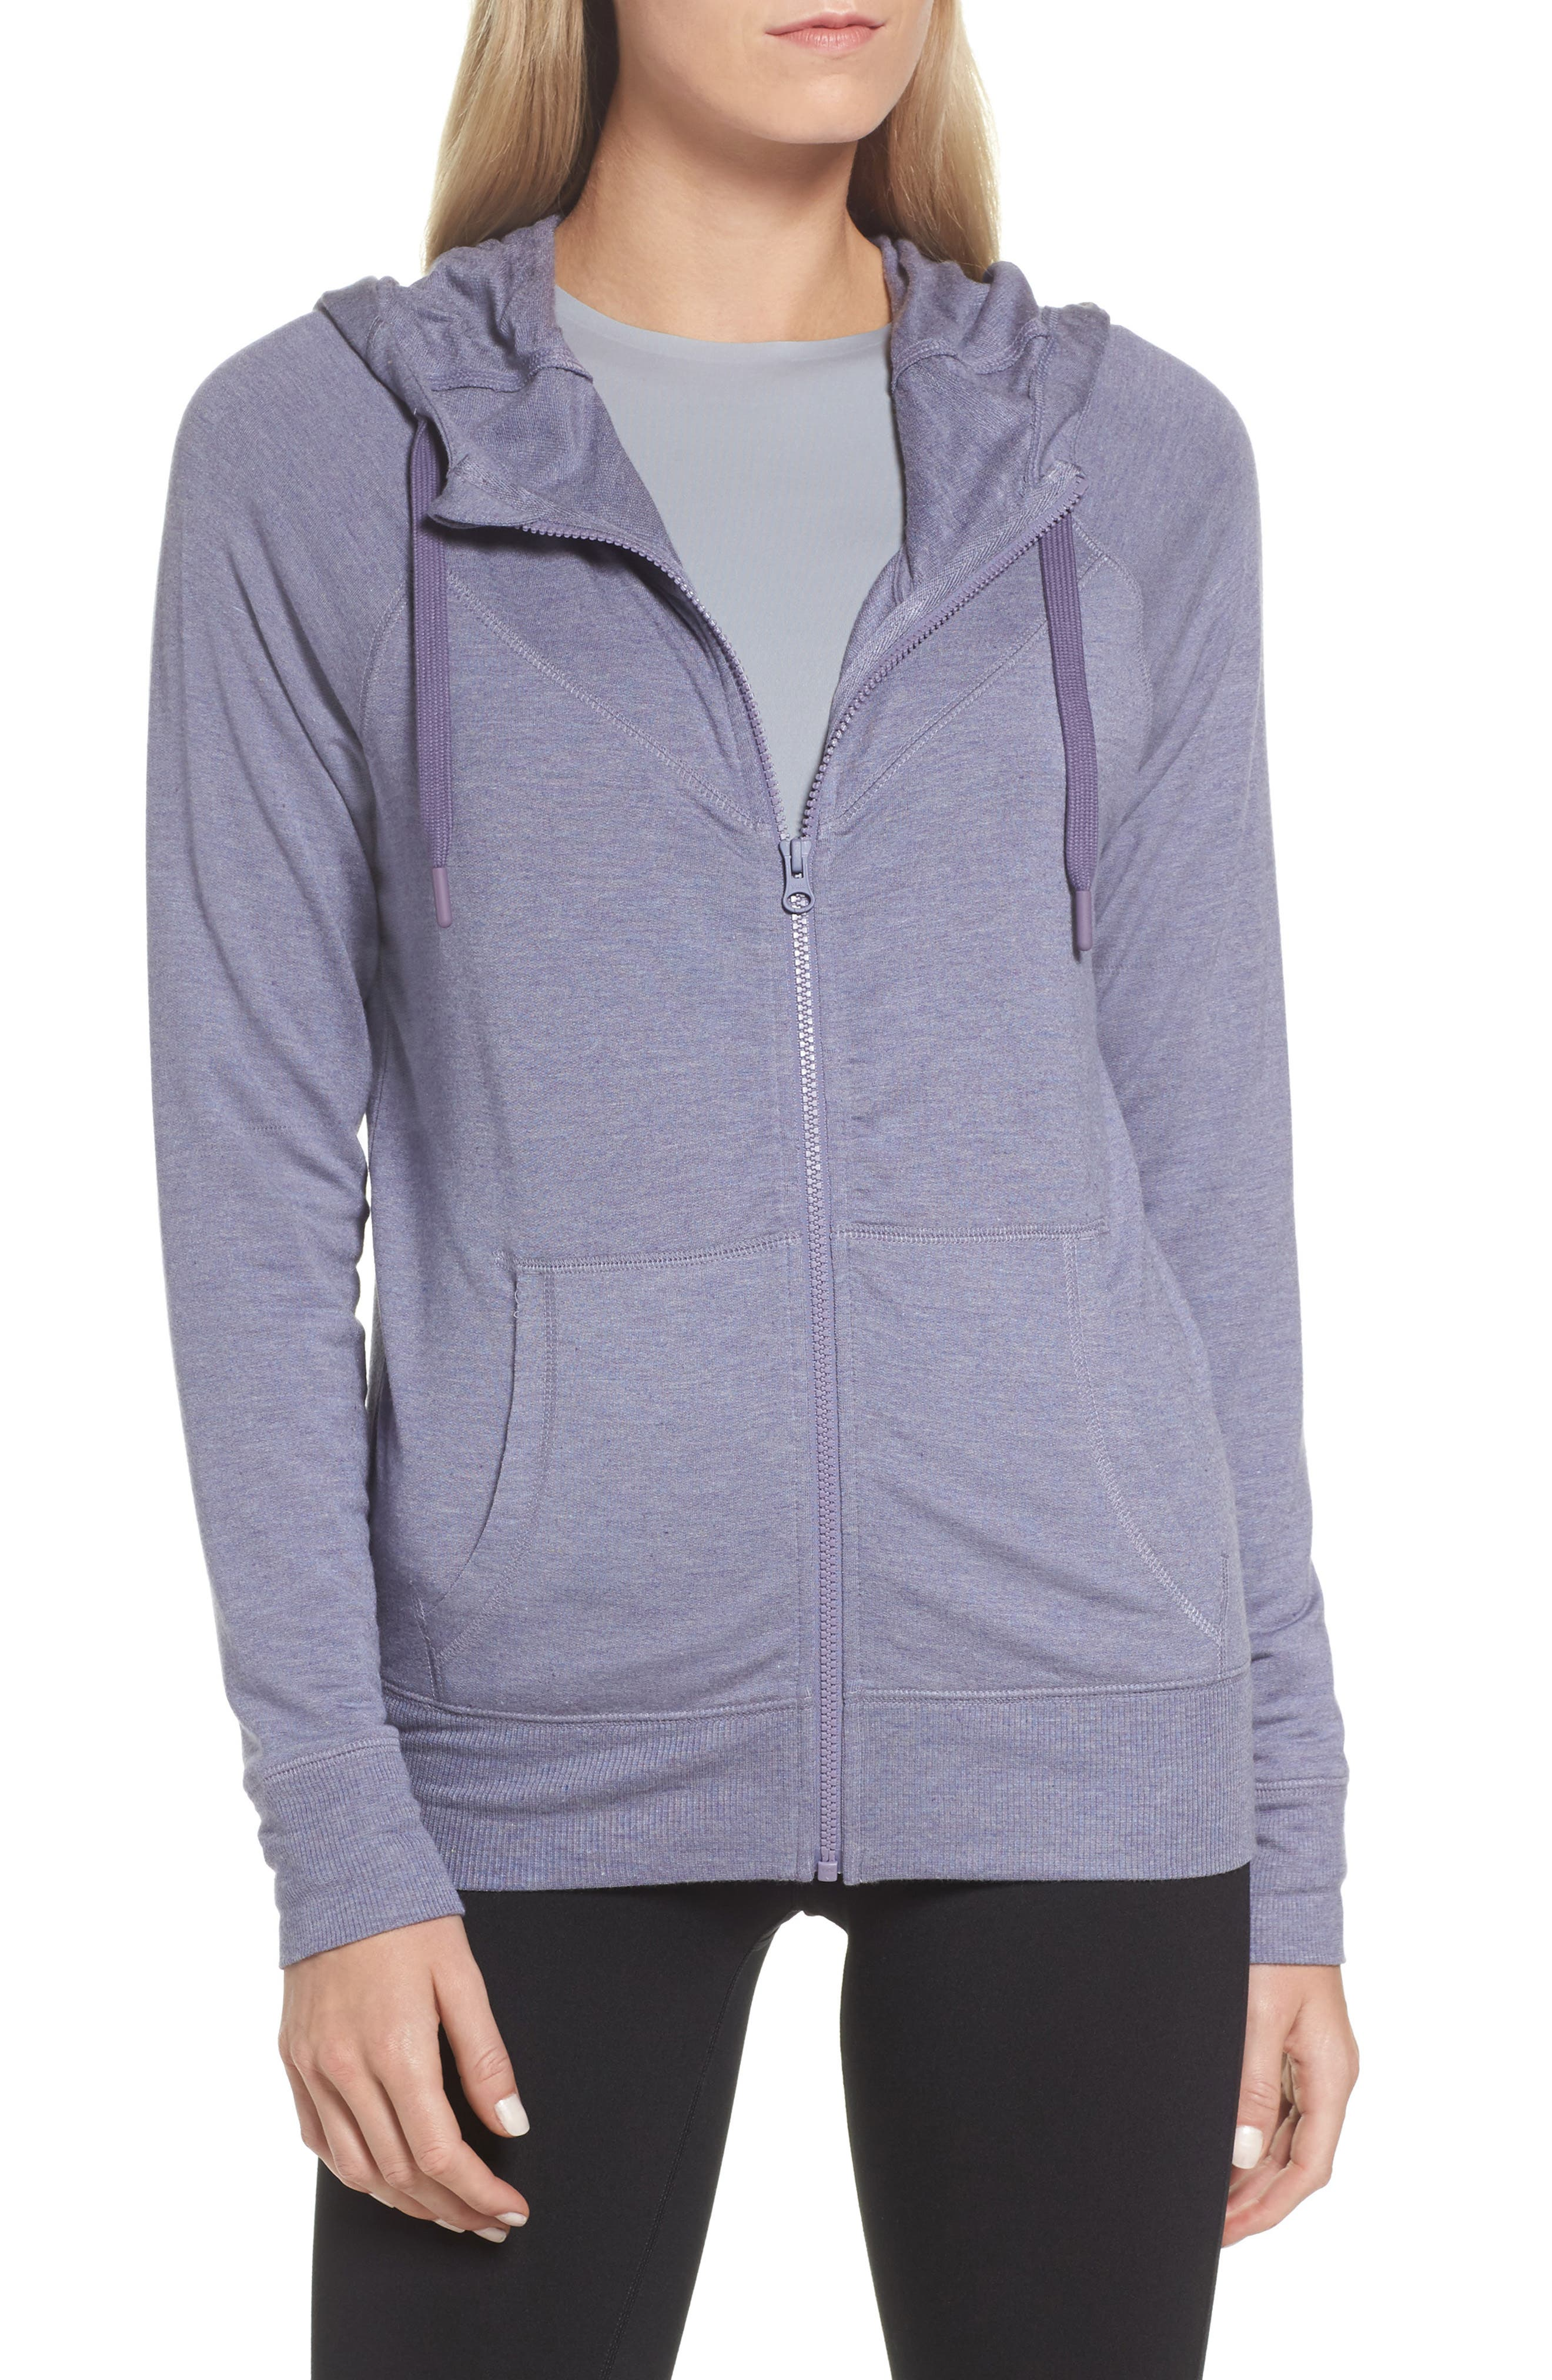 Well Played Zip Hoodie,                             Main thumbnail 1, color,                             Purple Cadet Heather